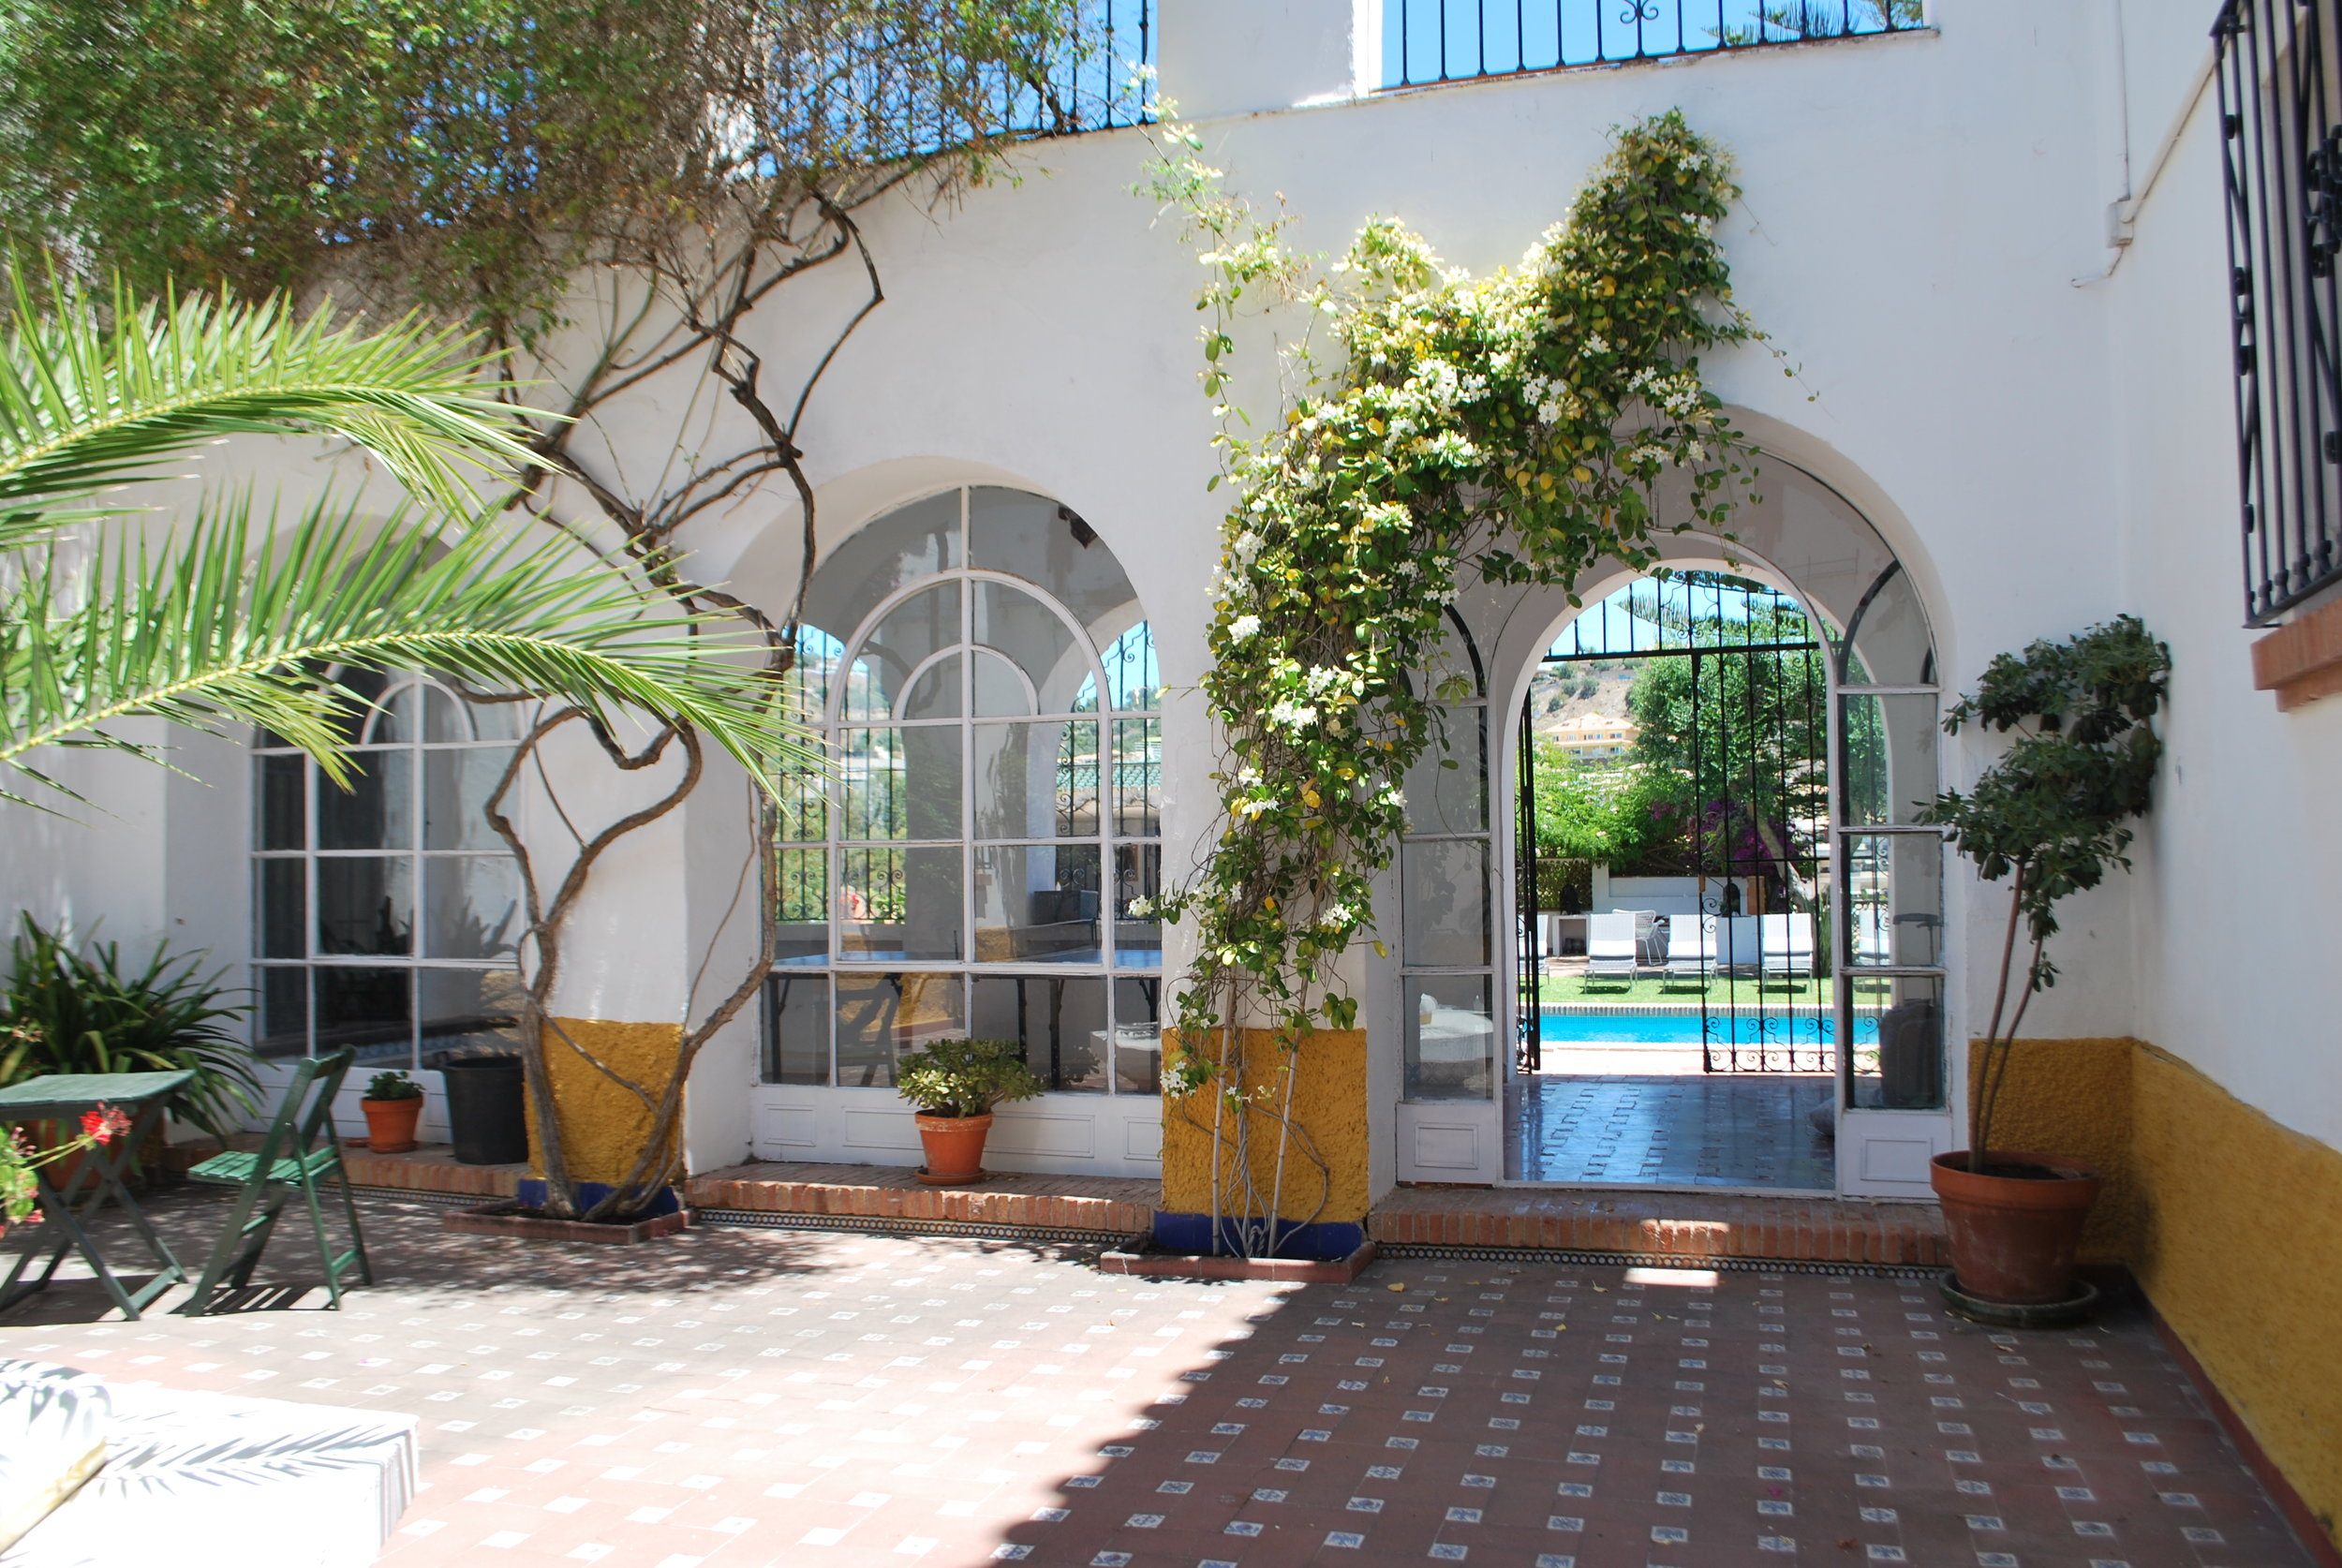 The Hacienda is designed so that all the arches line up in perfect symmetry.